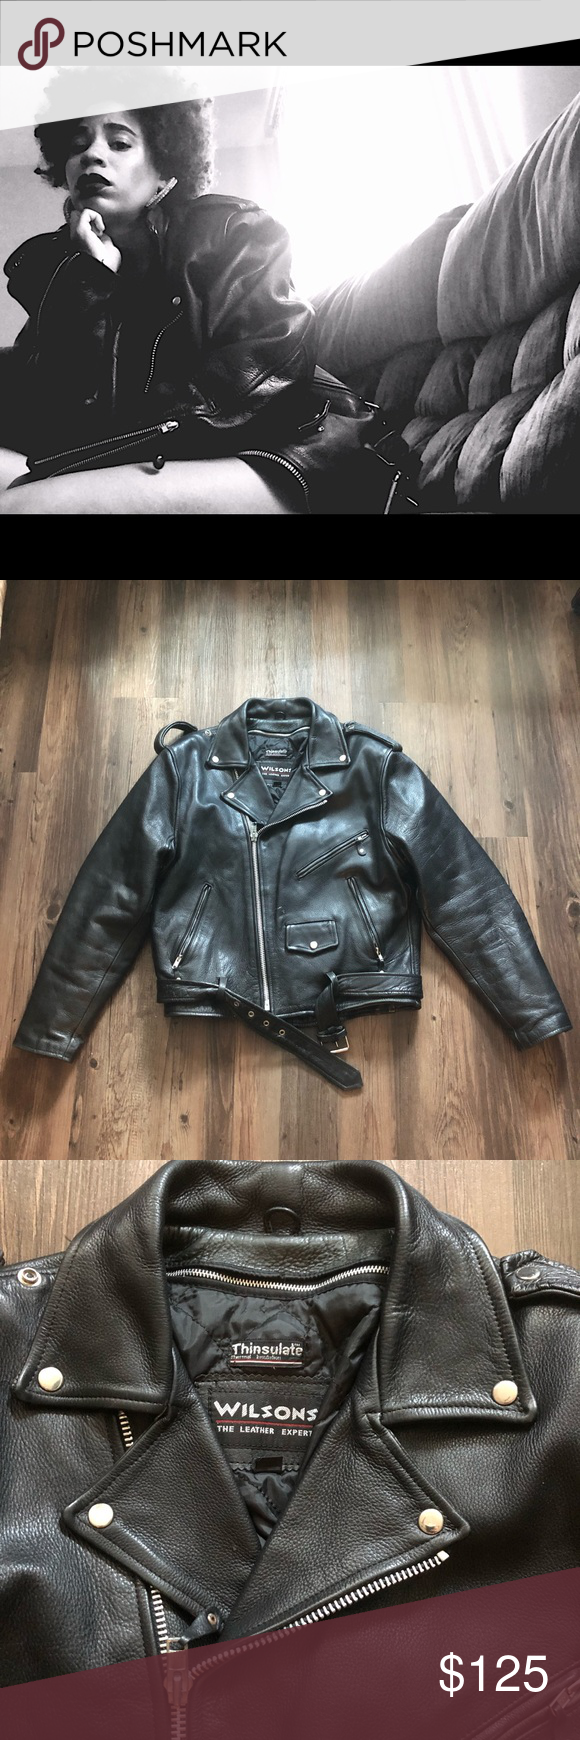 VINTAGE WILSONS LEATHER JACKET 🖤 Wilsons leather